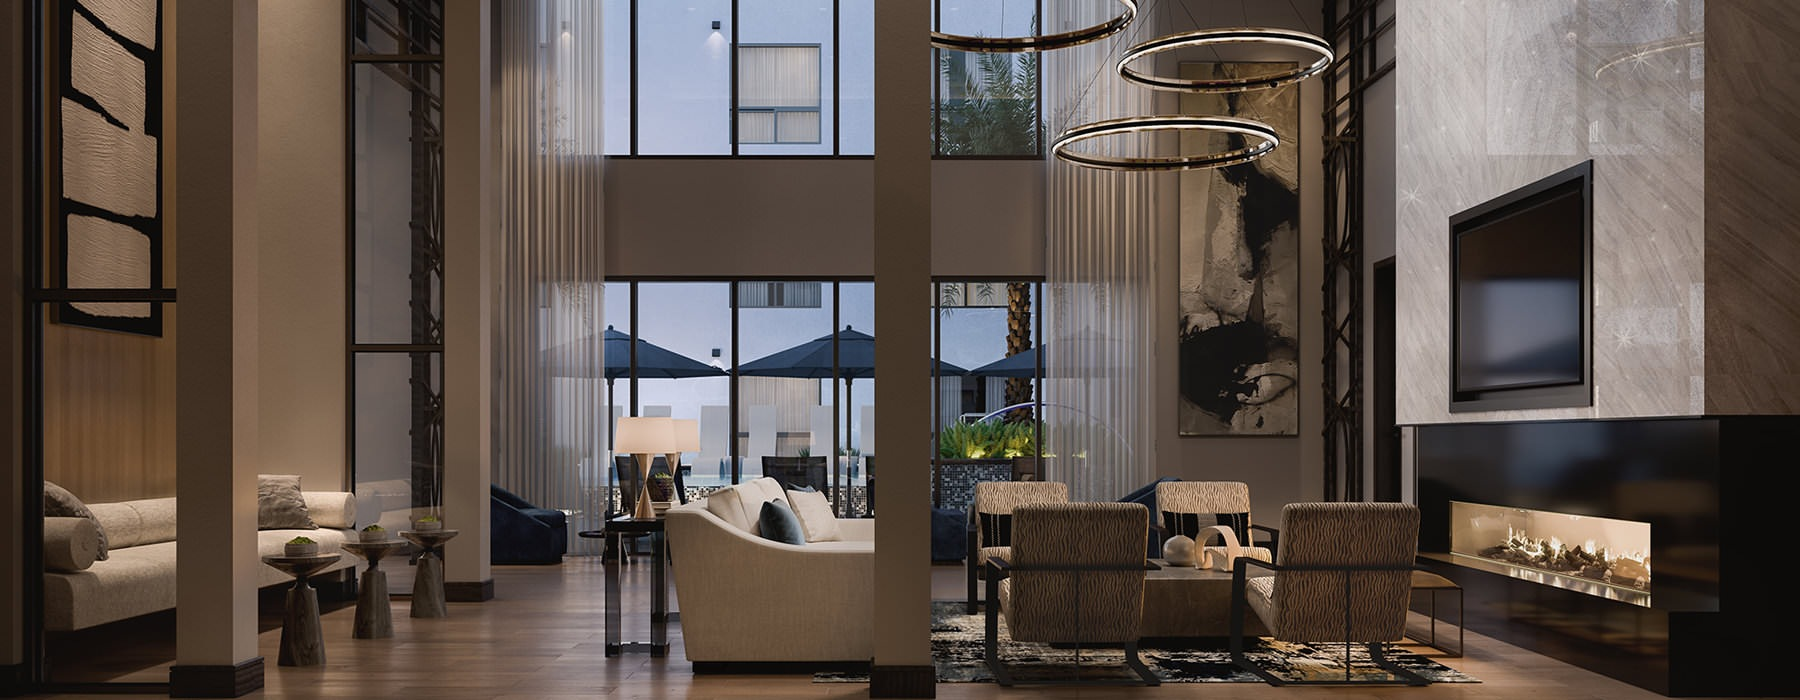 luxurious lobby with high ceilings, stylized lighting and seating in front of fireplace